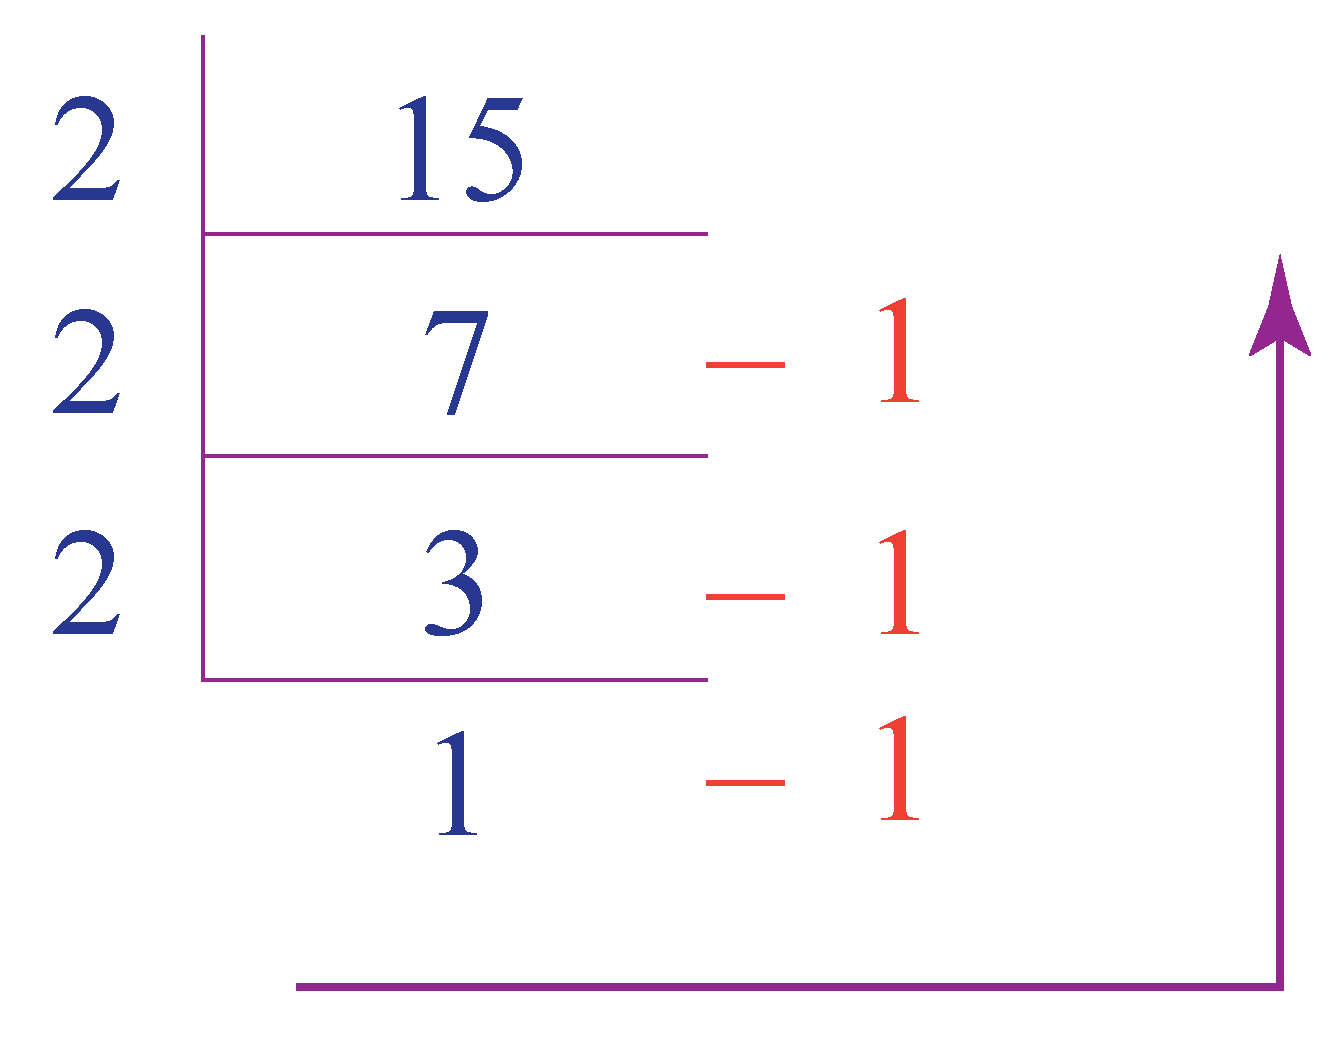 what is 15 in binary